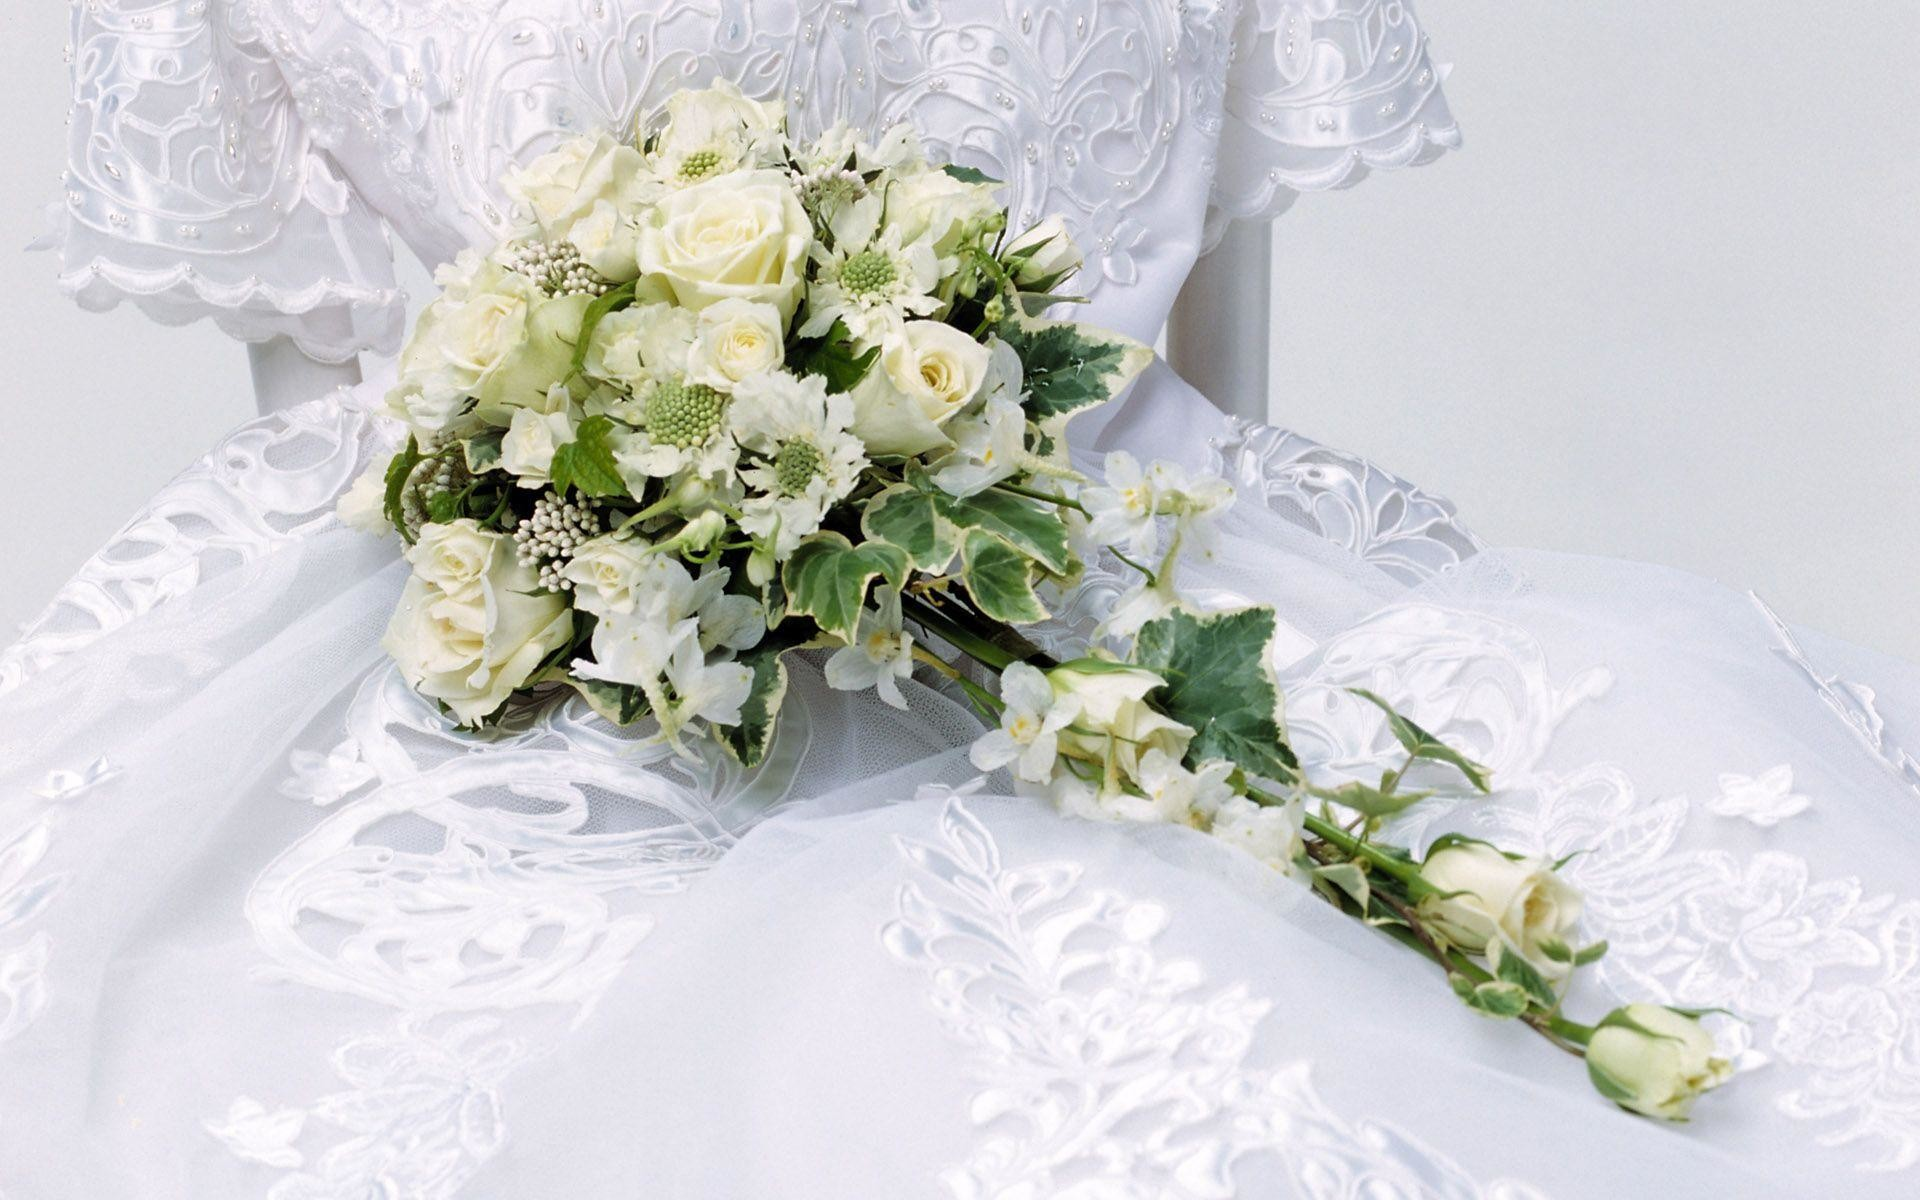 Res: 1920x1200, Wedding flower wallpaper wedding ring 301 - Wedding Flowers .